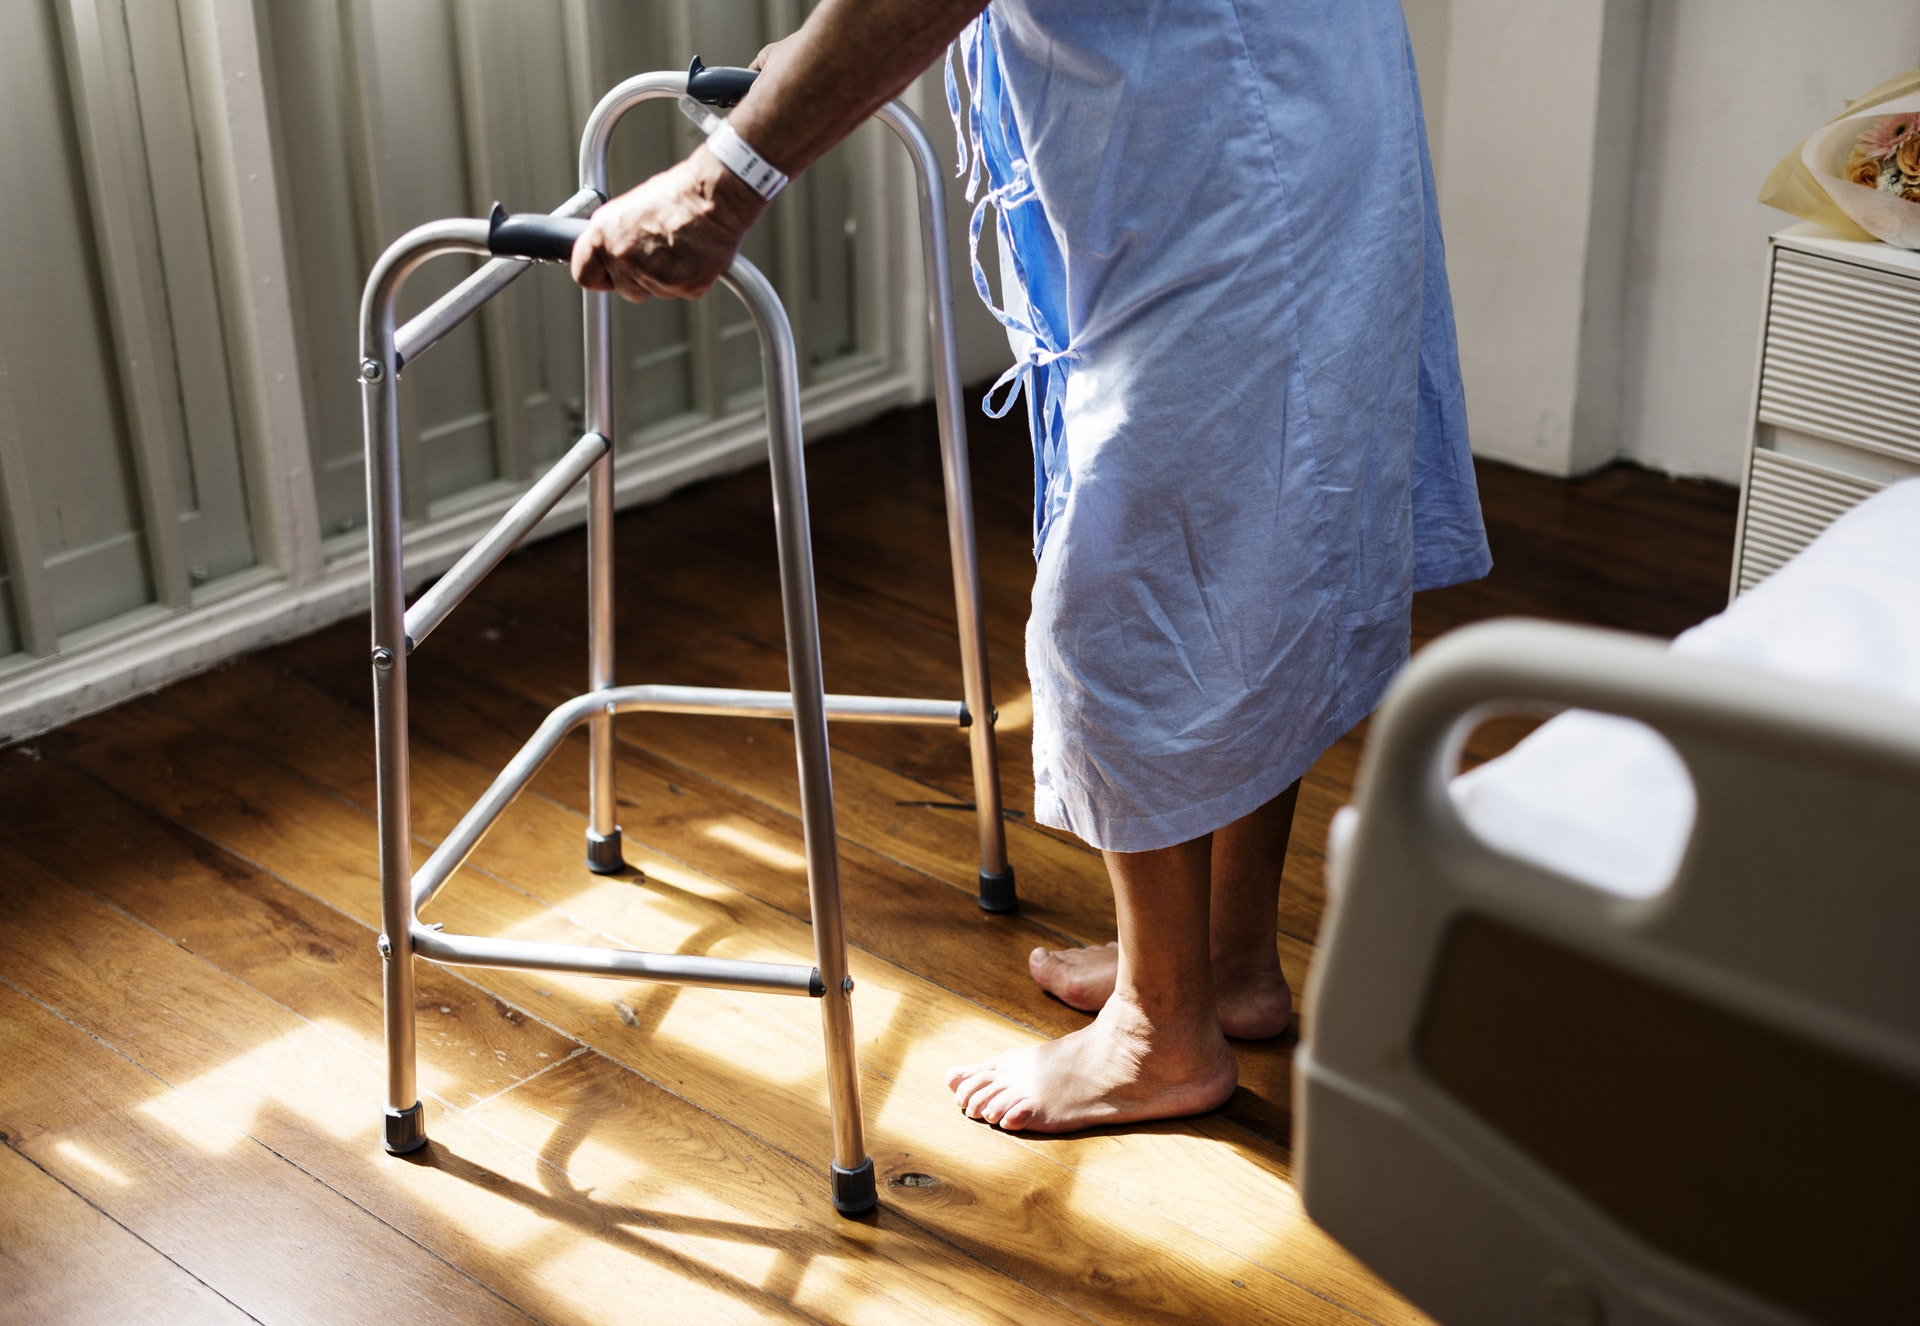 Calls to put CCTV in nursing homes are getting louder